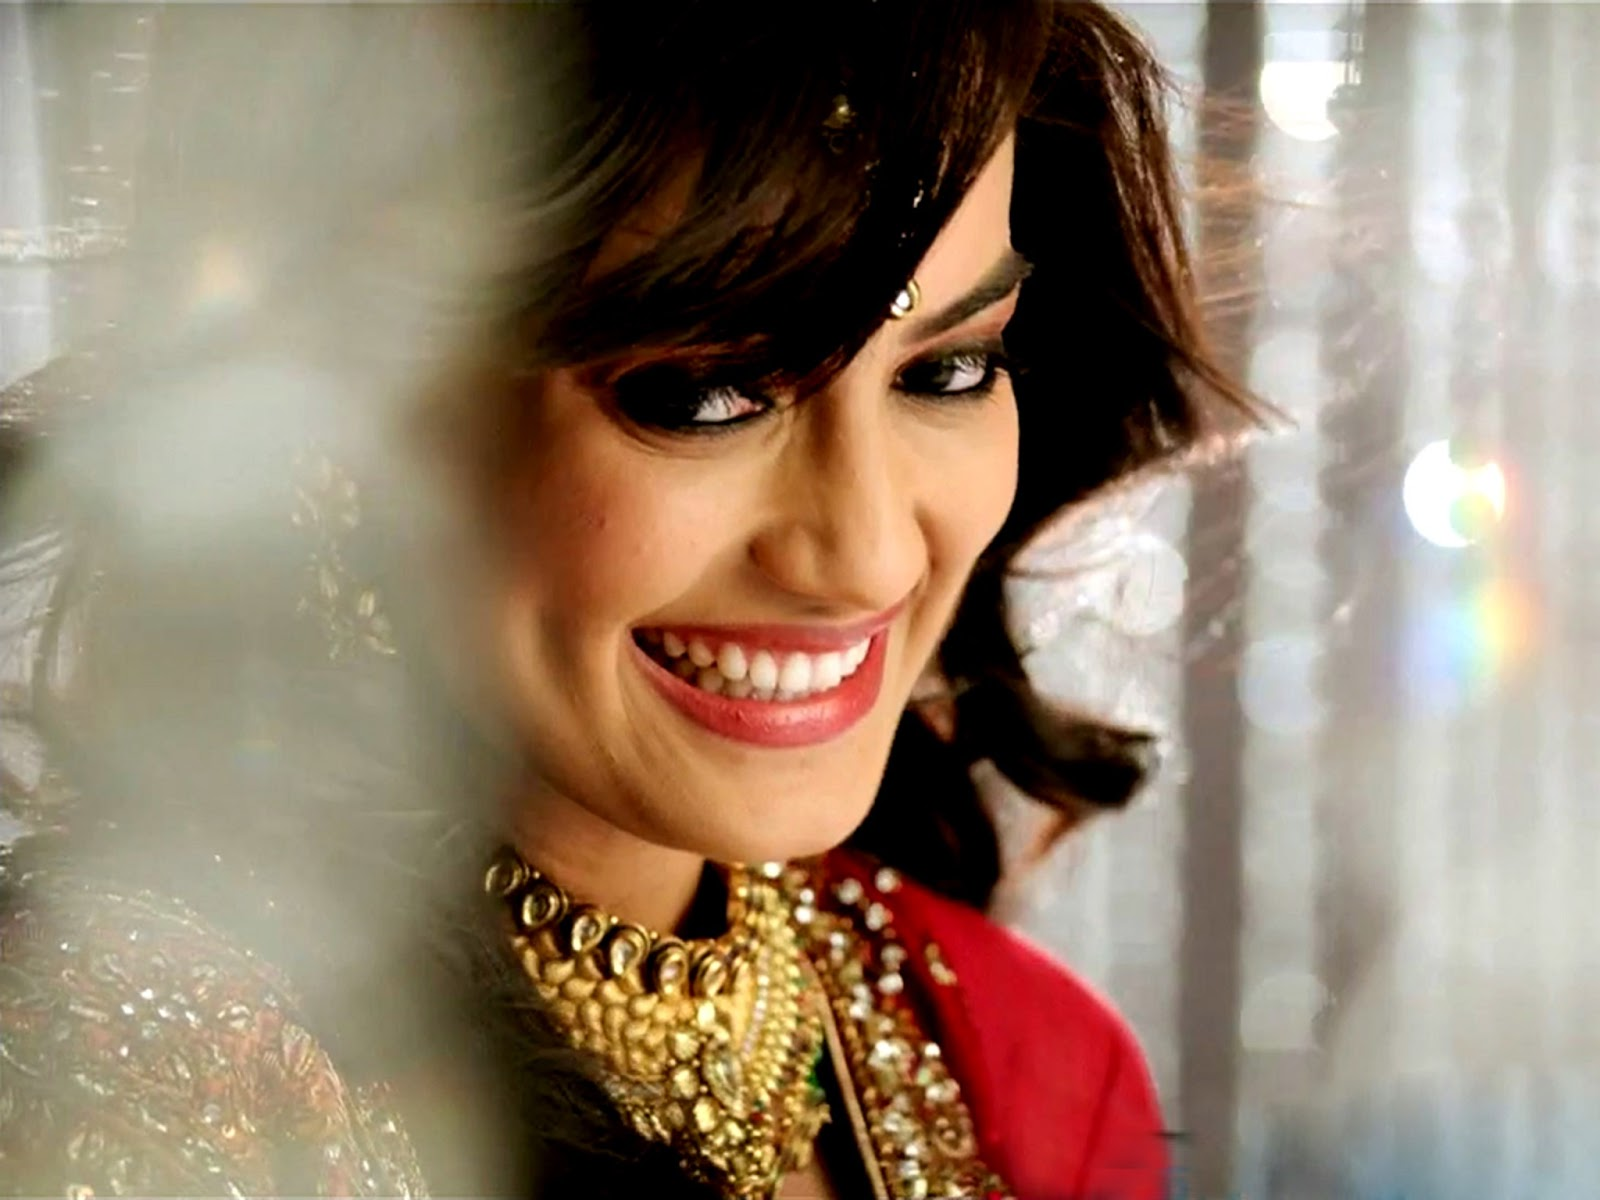 Love Jyoti Wallpaper : Surbhi Jyoti HD Wallpaper - all 4u wallpaper